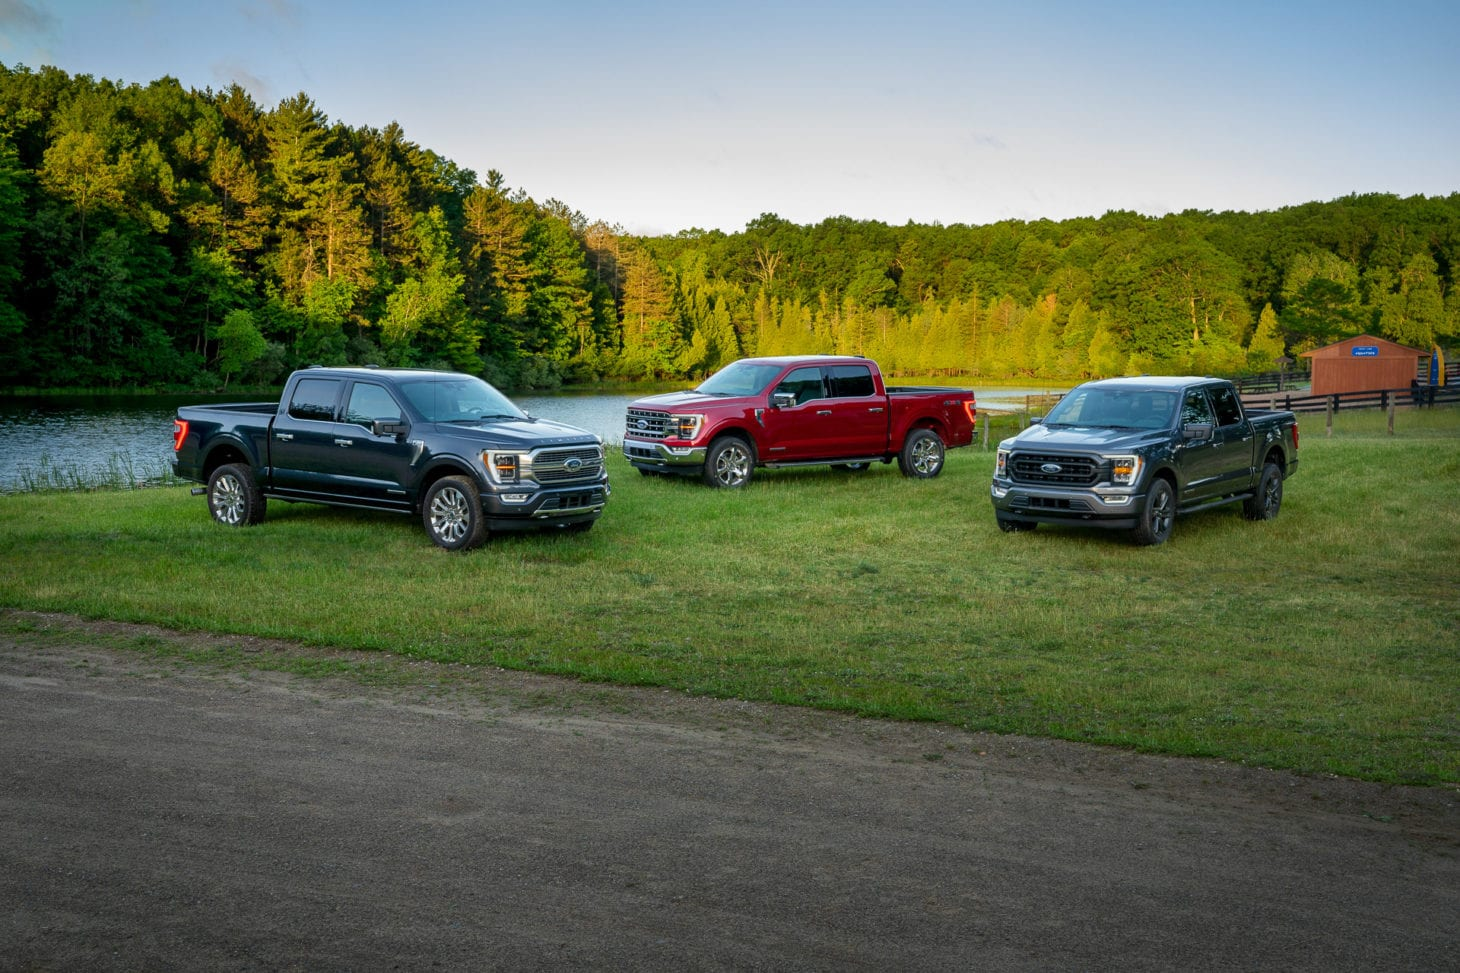 Group of Ford pickup trucks